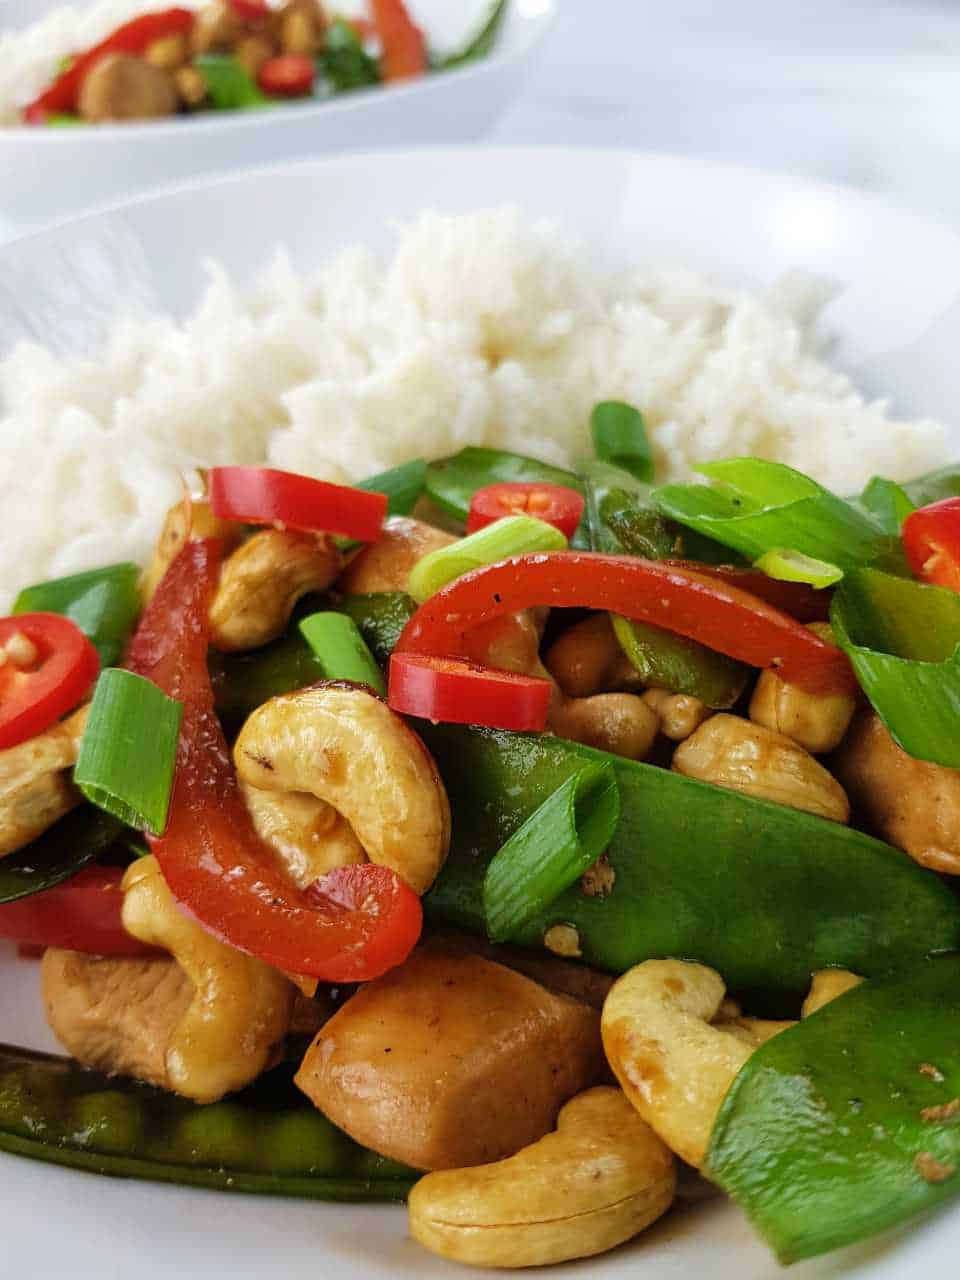 Chicken stir fry with cashews and rice in white bowls on a marble table.